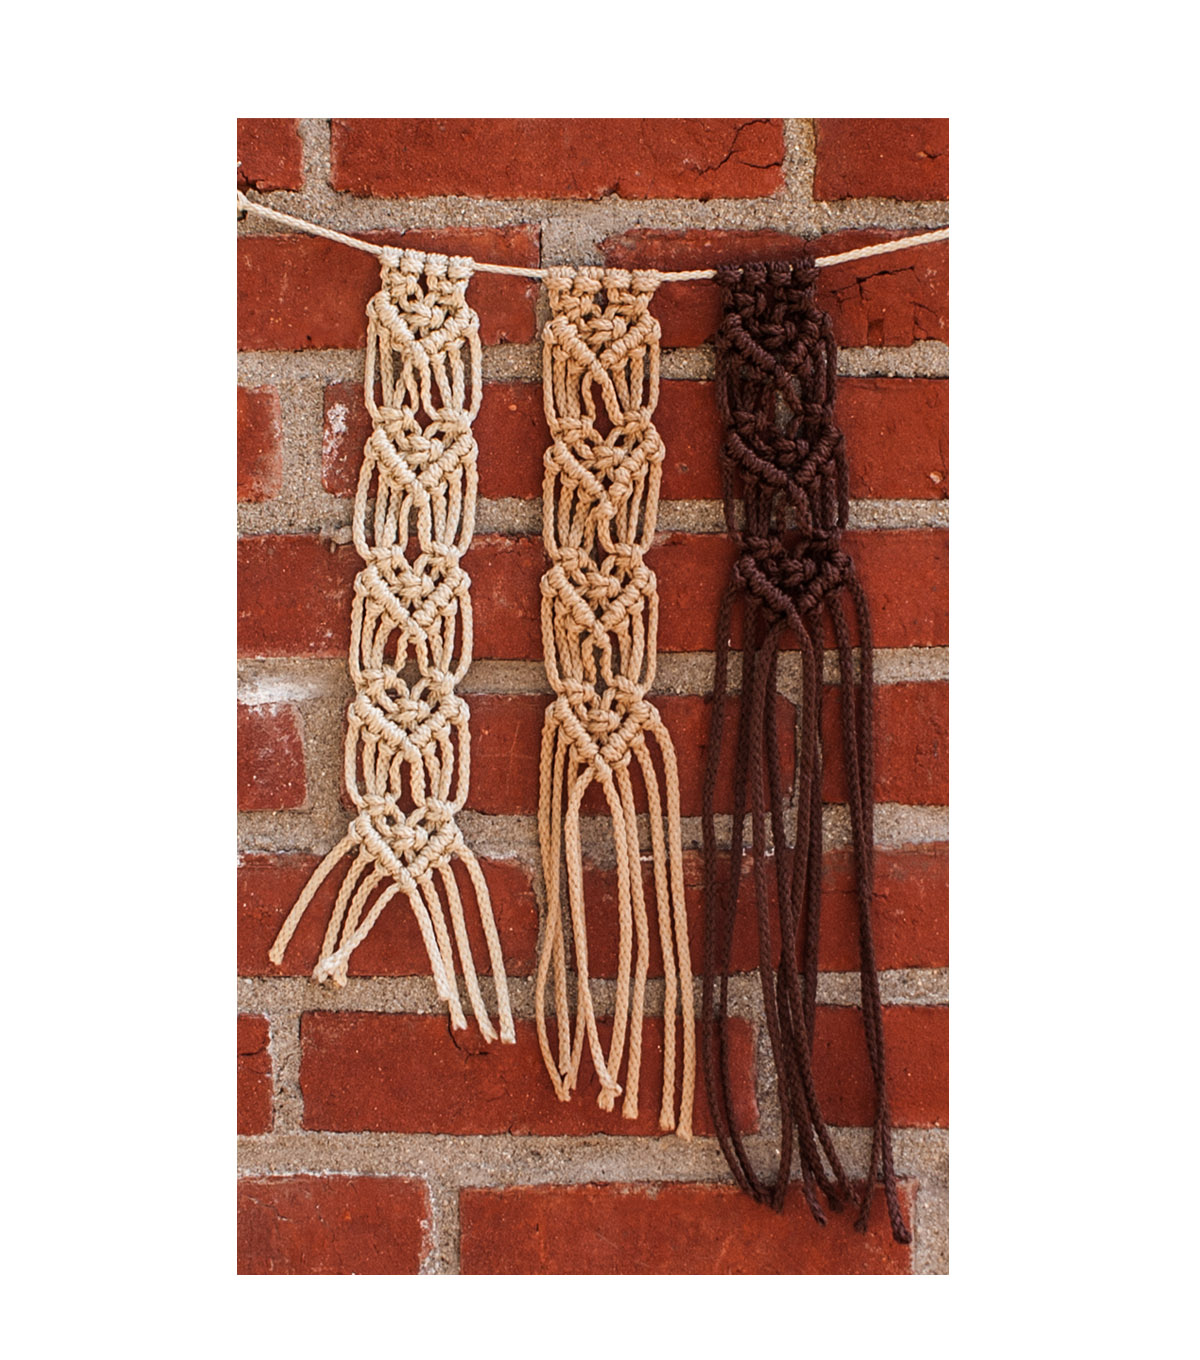 Pepperell Crafts Mini Macrame Hanging Heart Kit